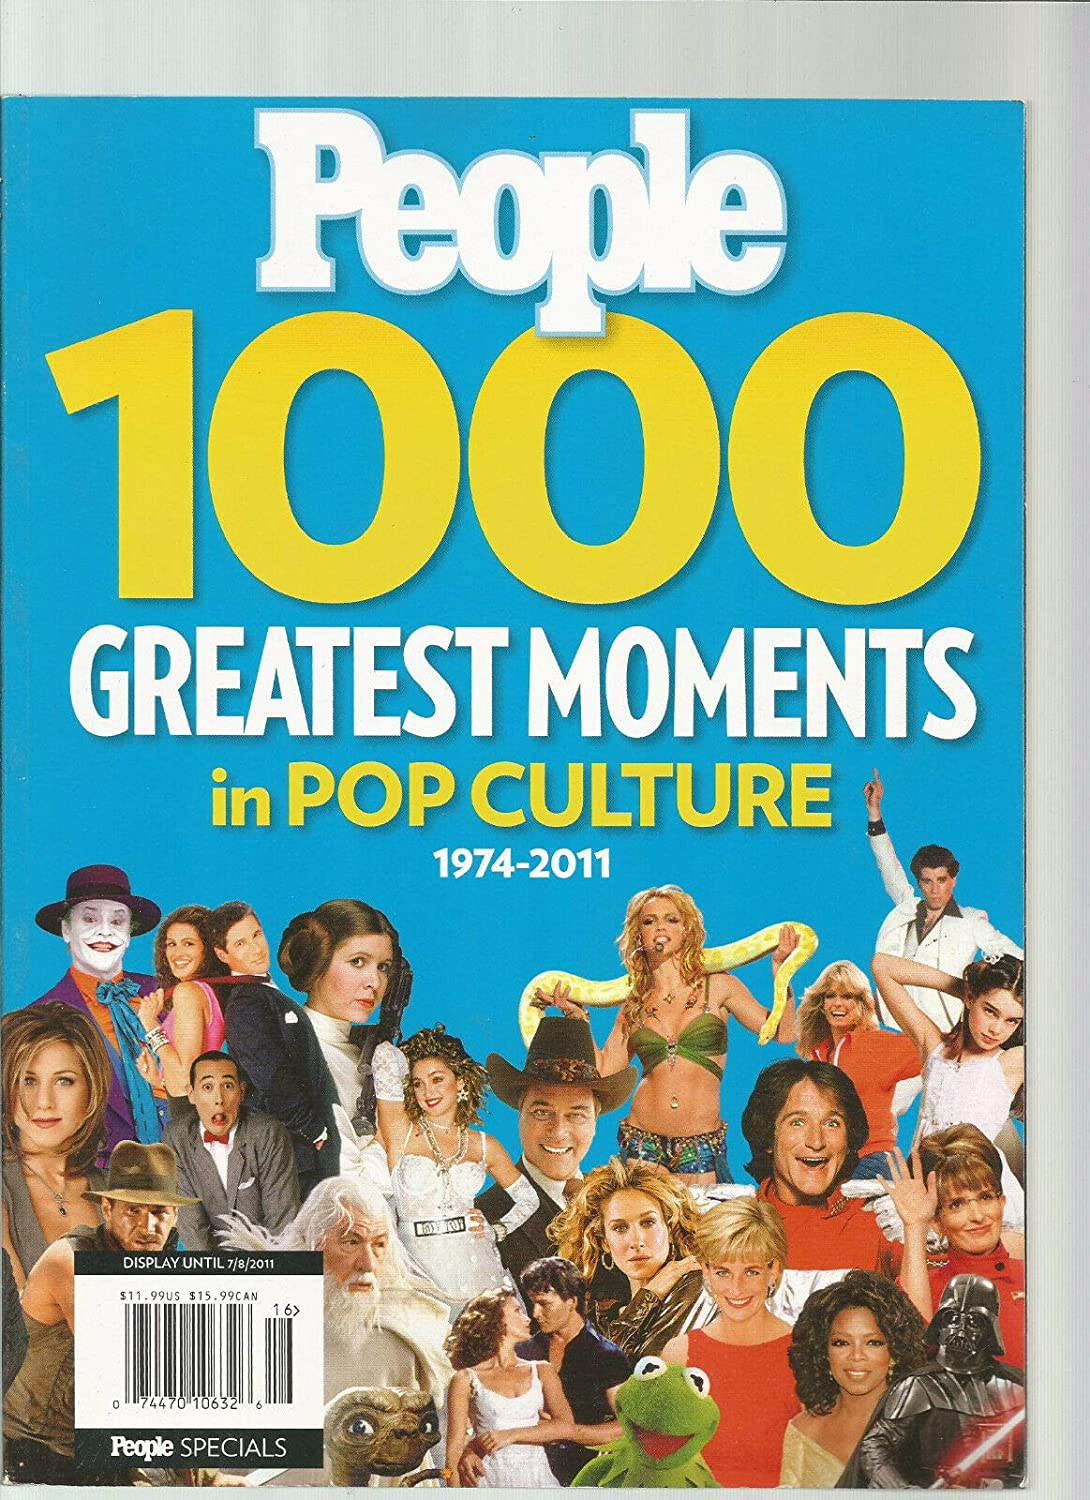 PEOPLE MAGAZINE 1000 GREATEST MOMENTS IN POP CULTURE 1974-2011 Unbranded